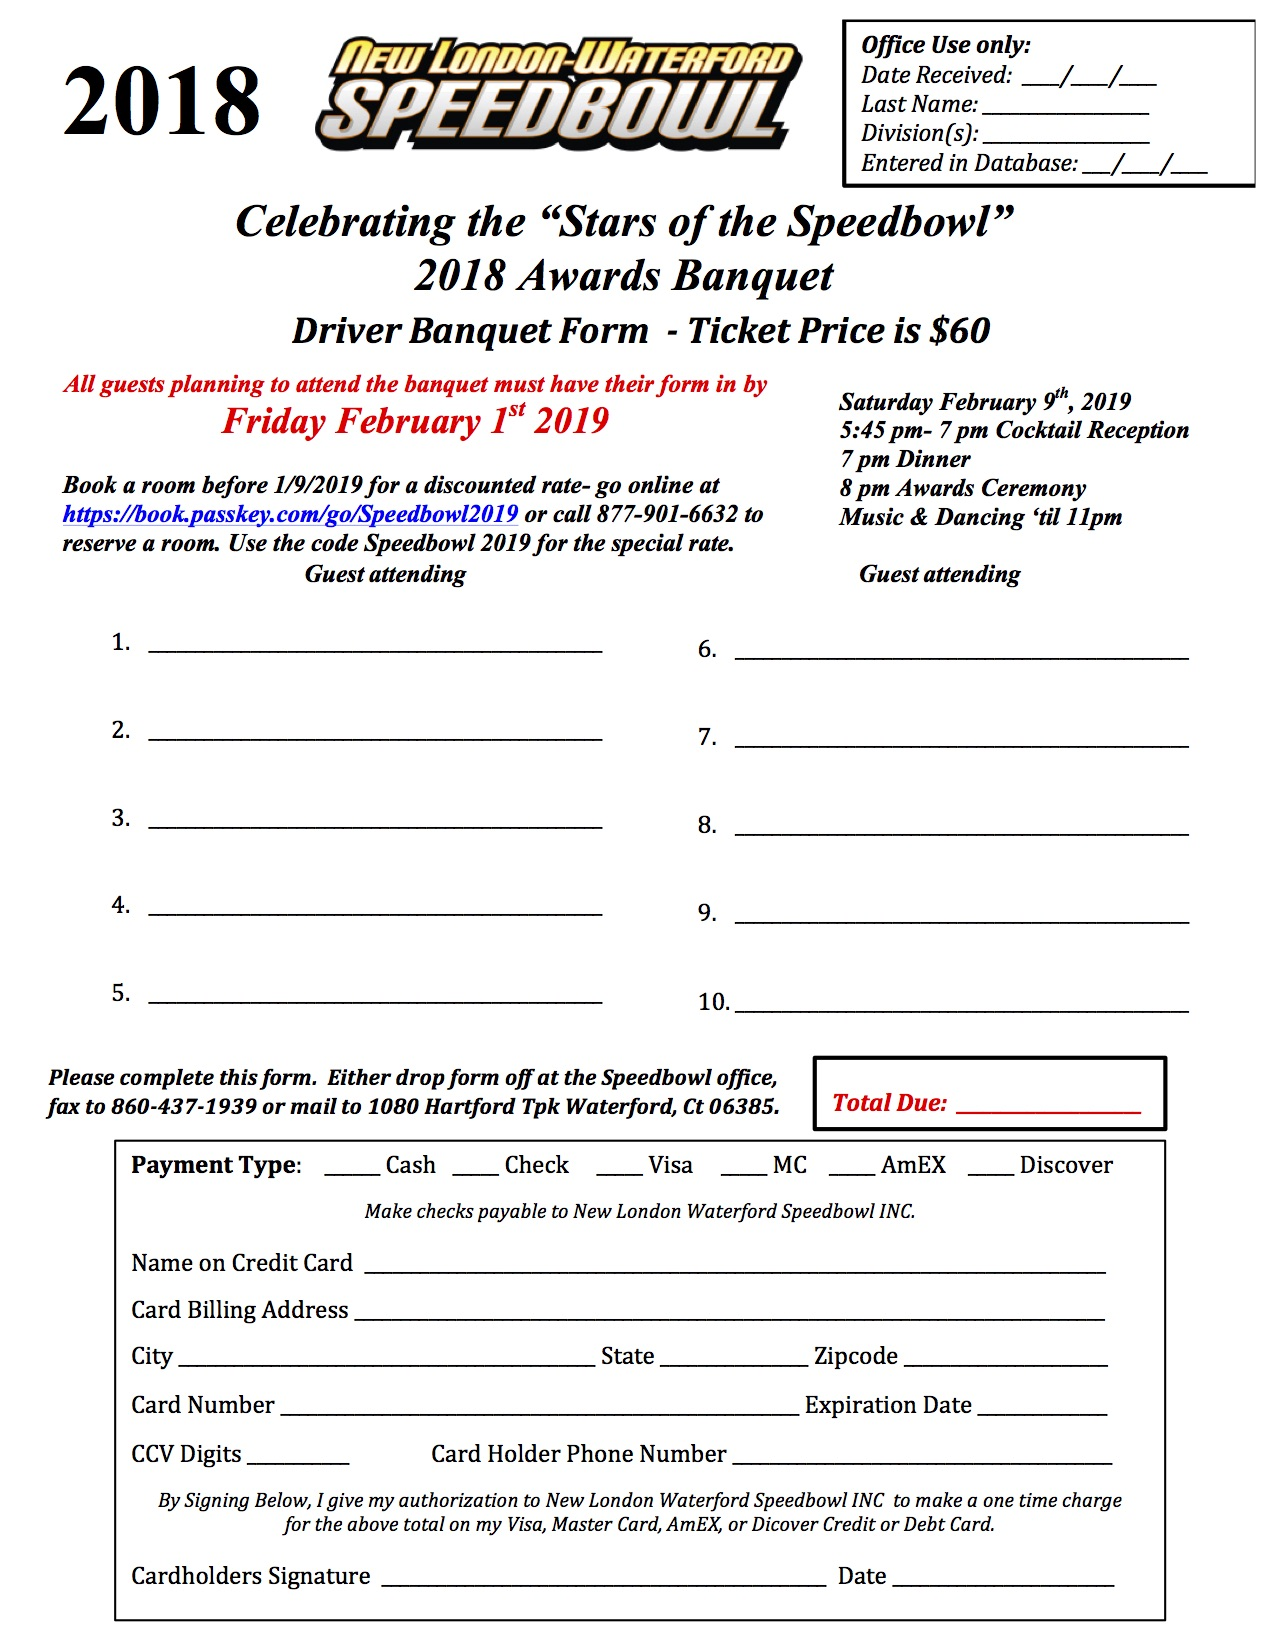 2018 Season Banquet Form